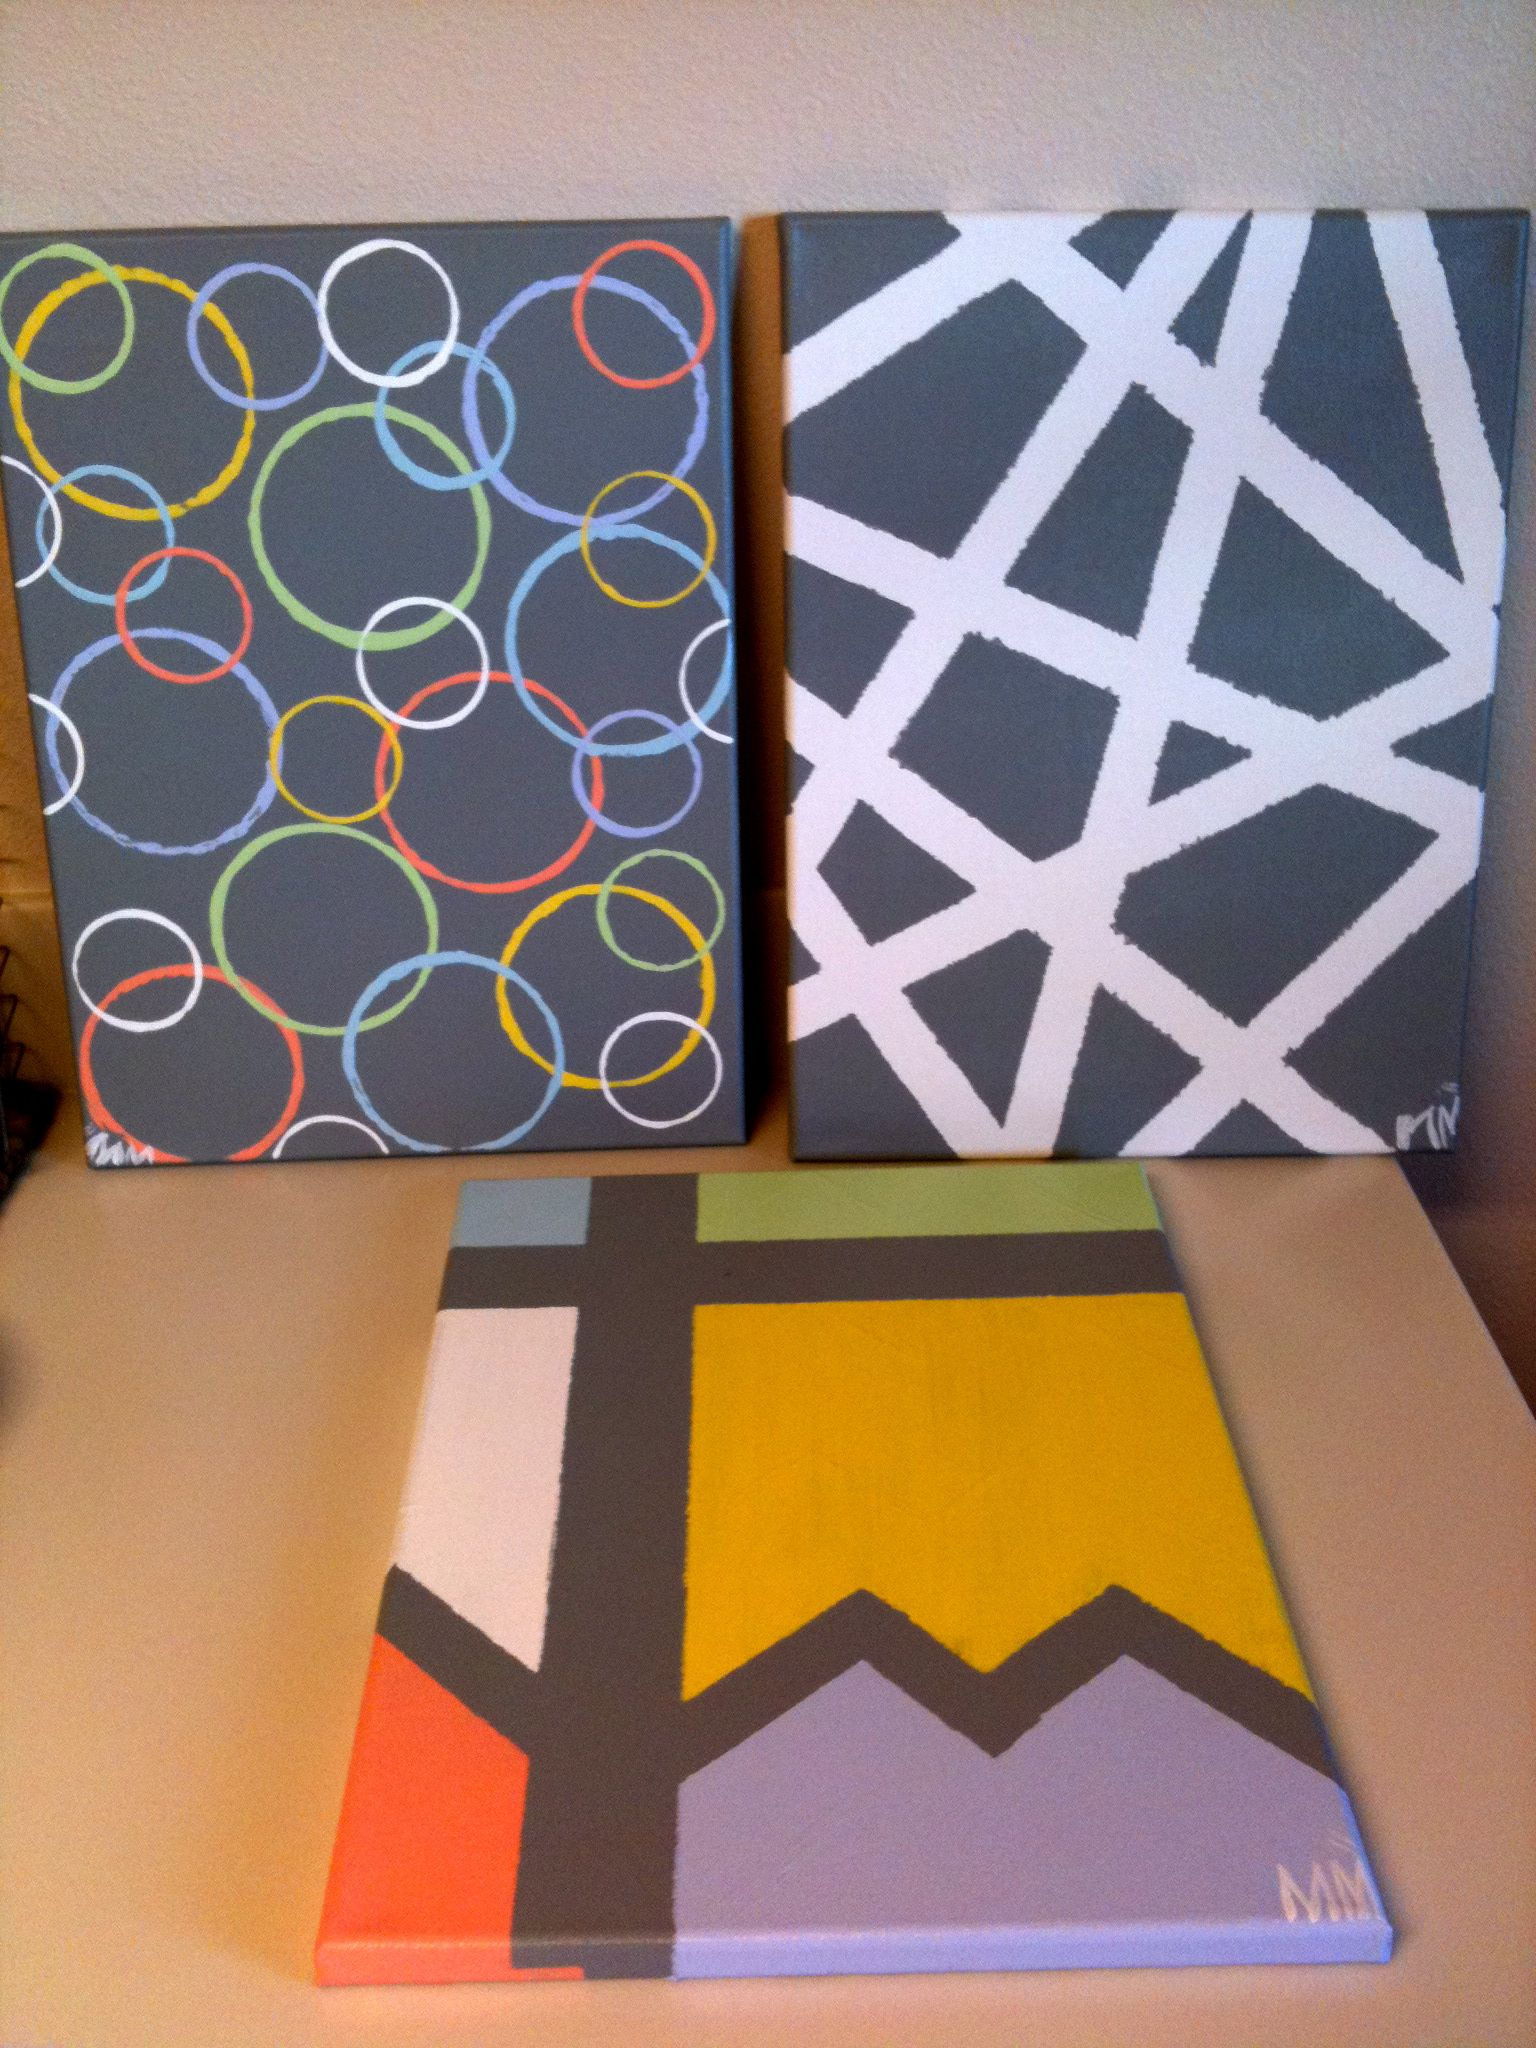 Pin By Courtney Patrin On Canvas Canvas Painting Diy Tape Painting Art Diy